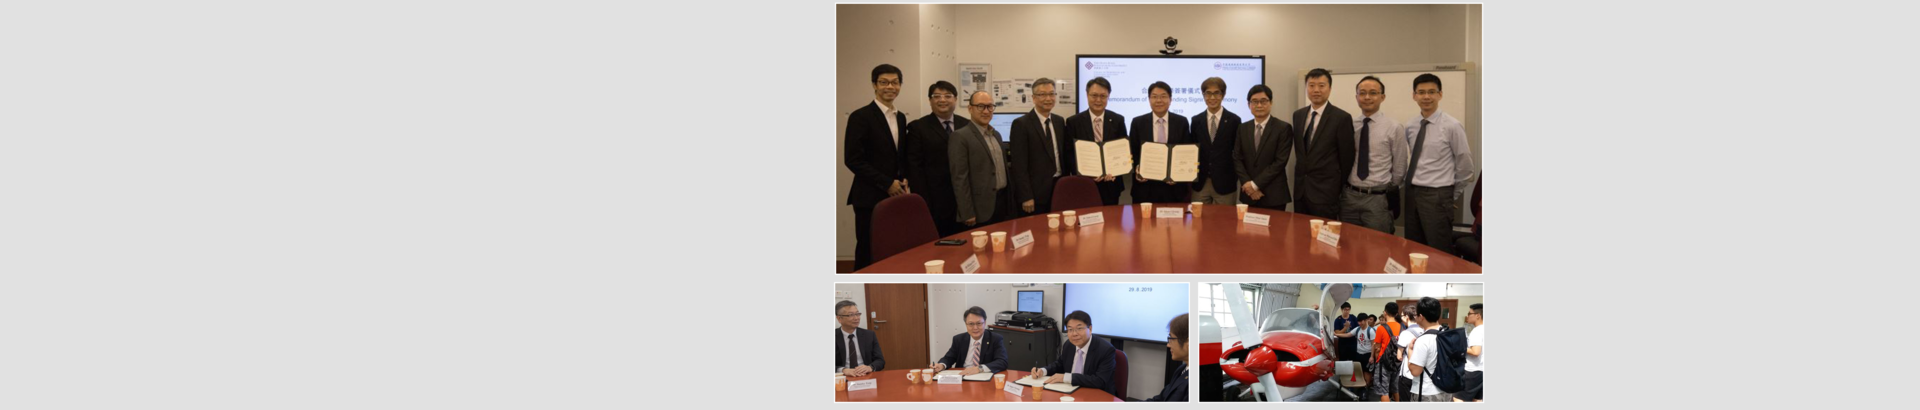 Signing of MoU between CPCE and China Aircraft Services Limited